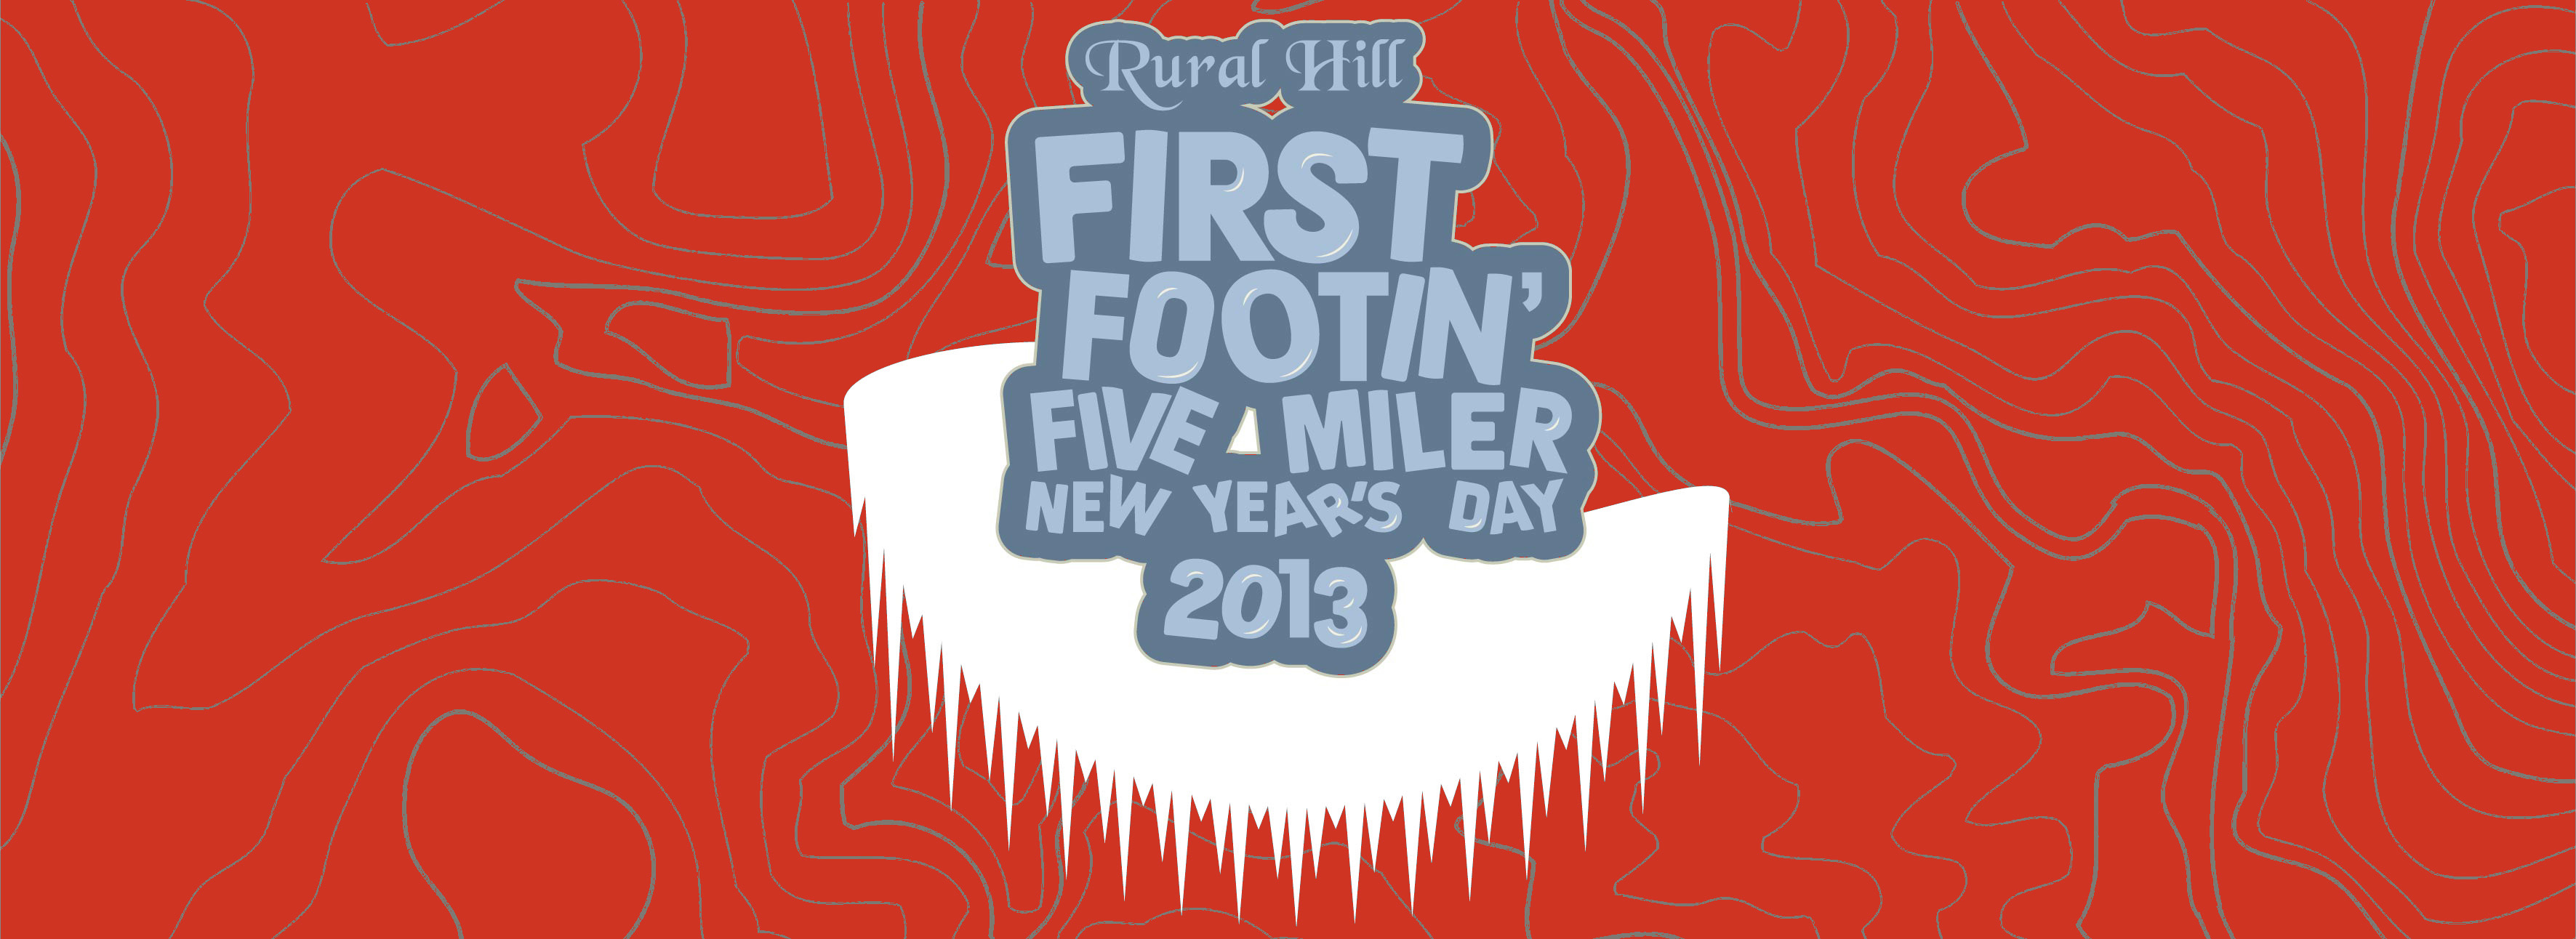 Tickets for Rural Hill First Footin' Five Miler in Huntersville from ShowClix